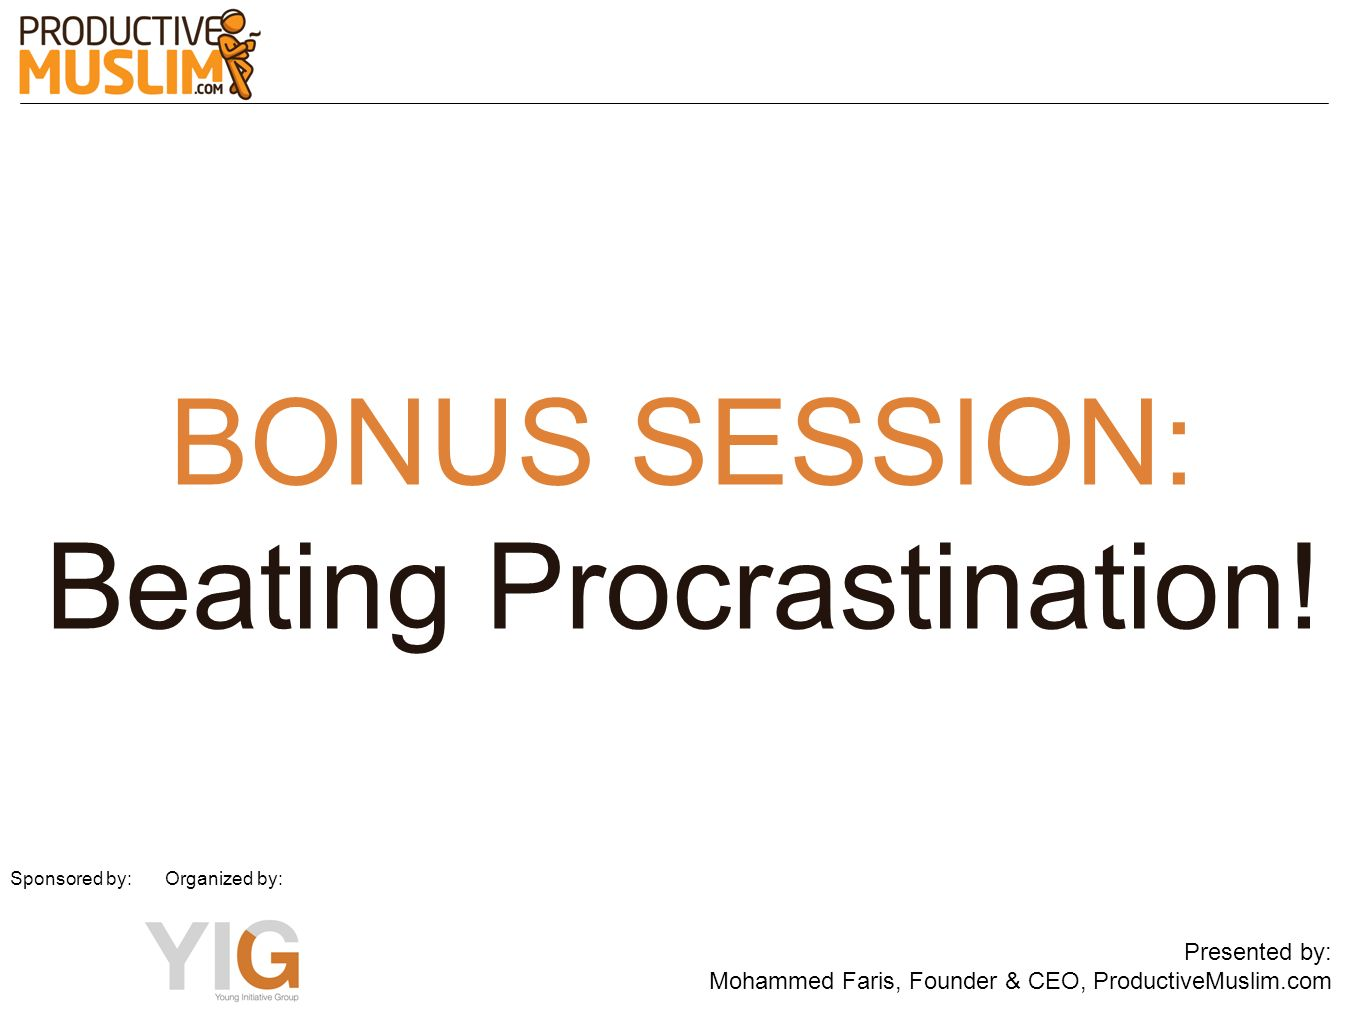 Beating Procrastination!